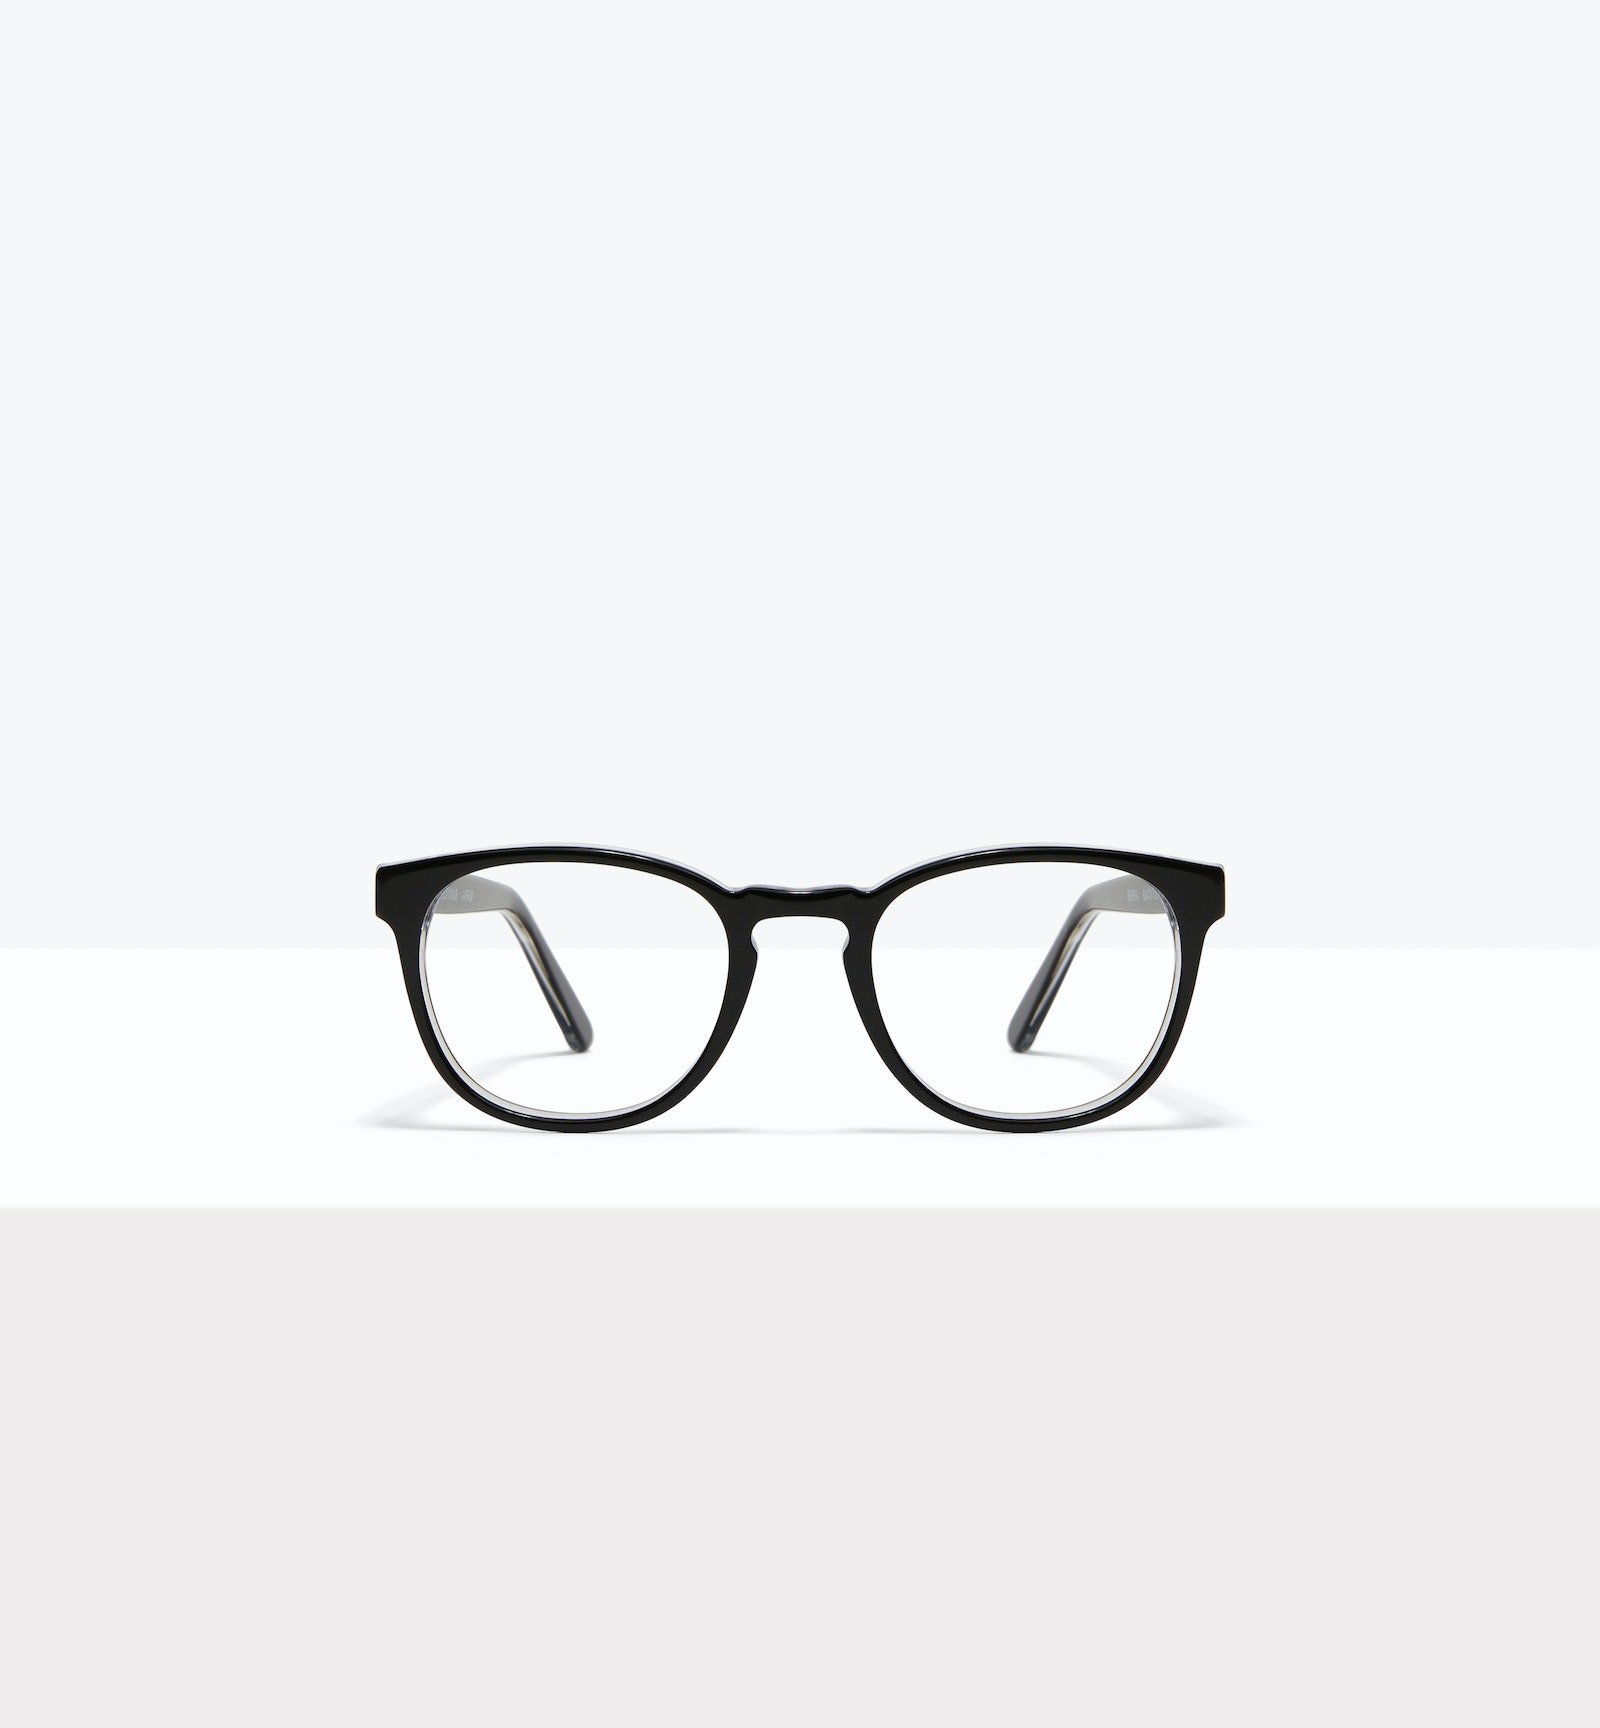 Affordable Fashion Glasses Round Eyeglasses Men Boreal Black Ice